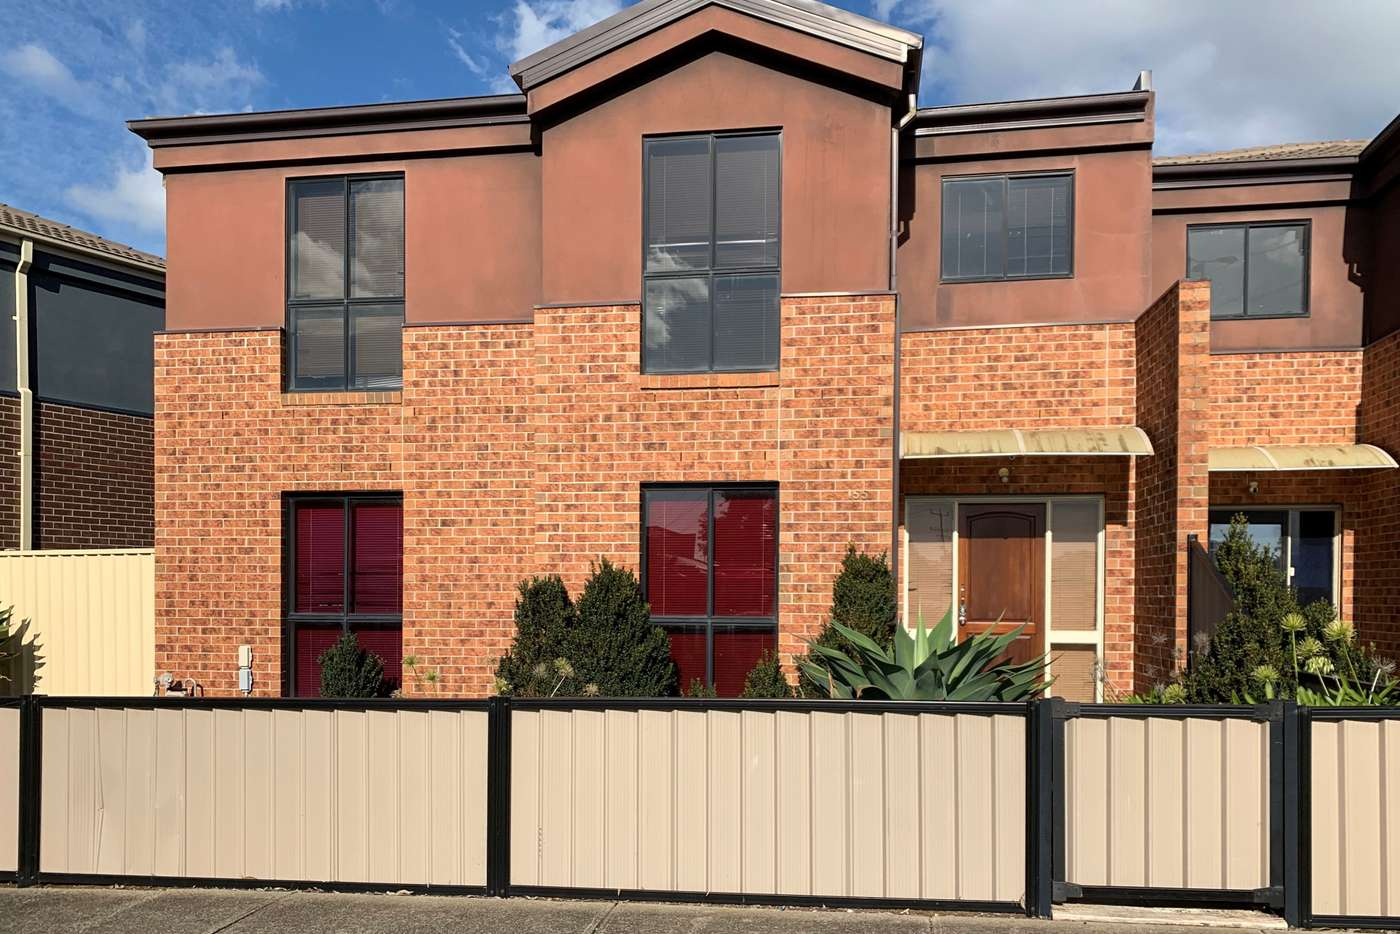 Main view of Homely townhouse listing, 155 The Avenue, Sunshine West VIC 3020